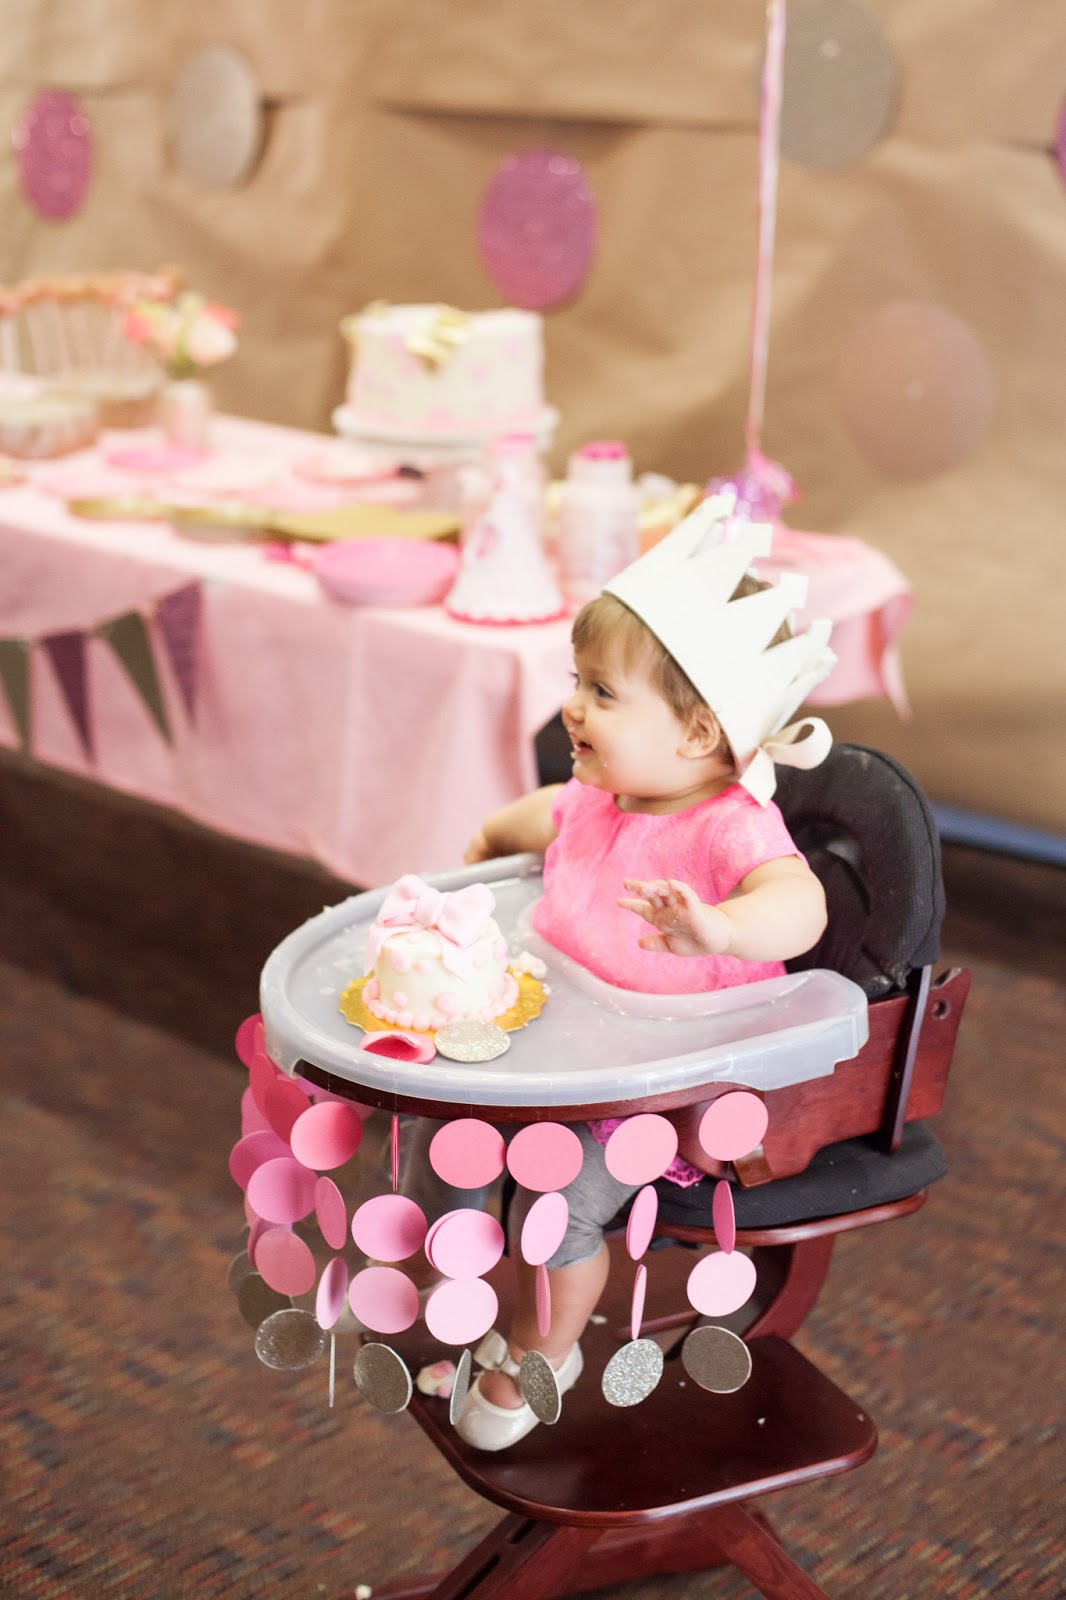 Best ideas about Baby First Birthday Party . Save or Pin Nat your average girl 1st birthday party decor Now.